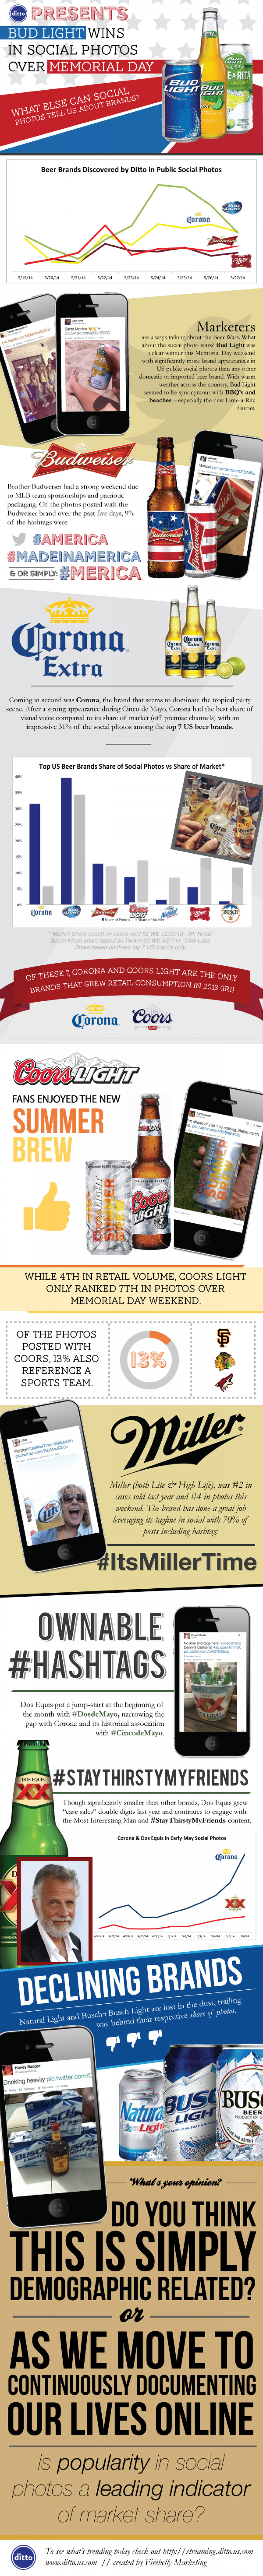 Bud Light Wins in Social Photos over Memorial Day Infographic